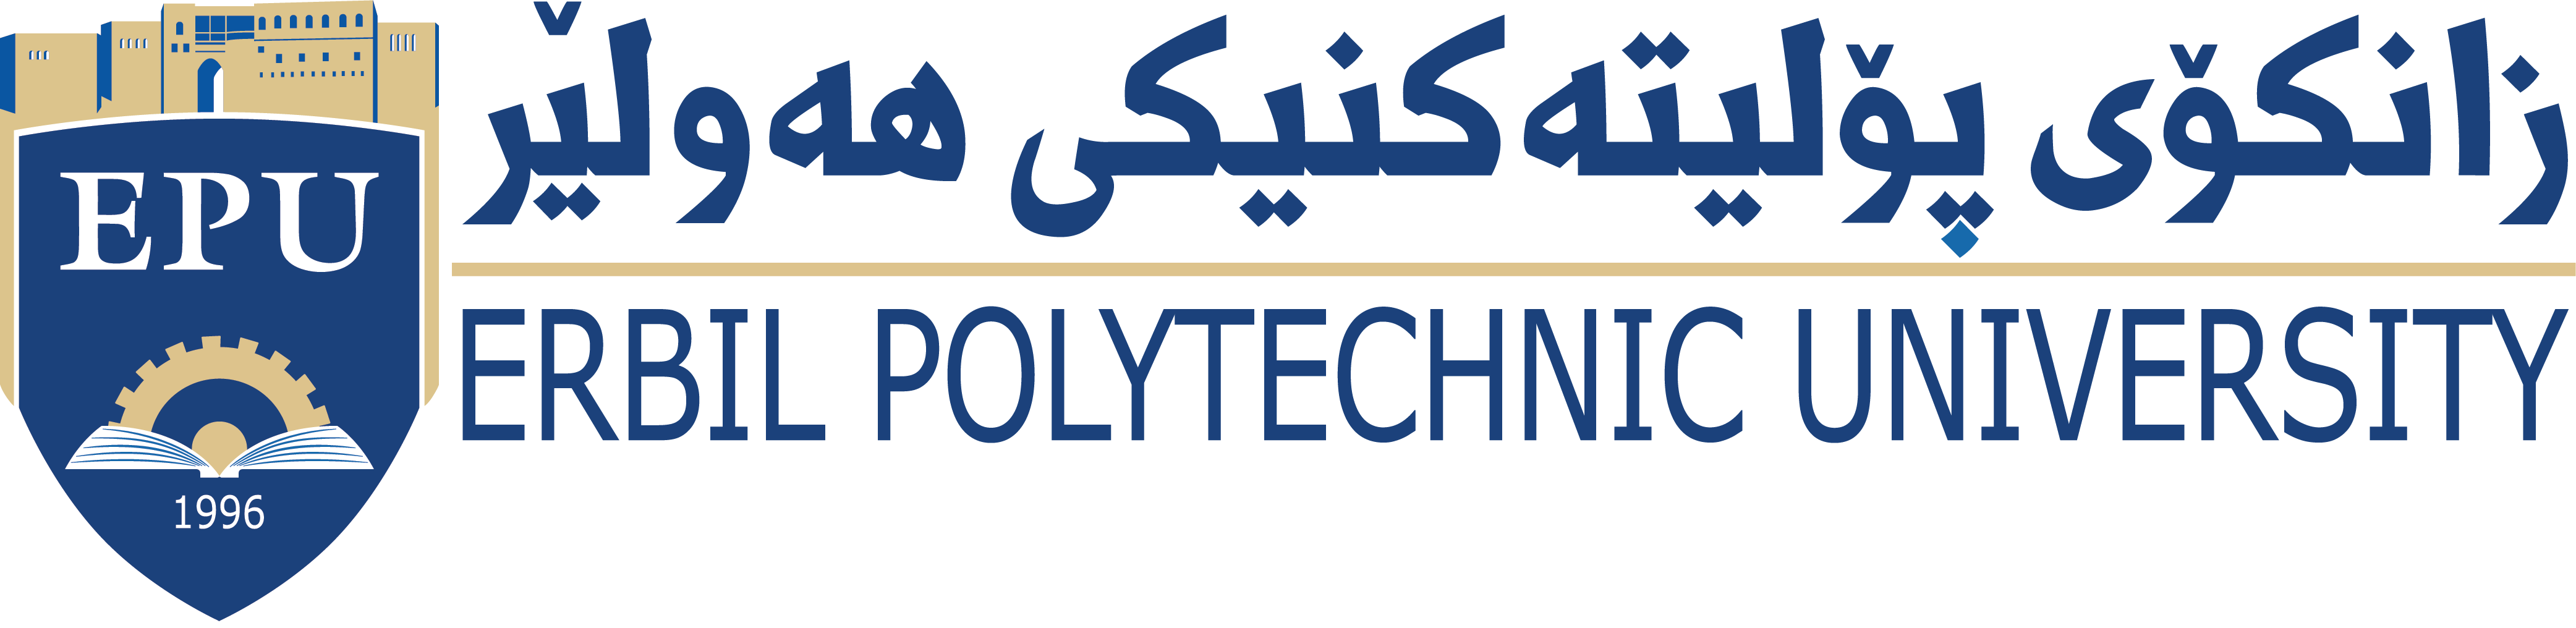 The International Office of Erbil Polytechnic University Announces The Scholarship Of UKM of Malaysia for 2021